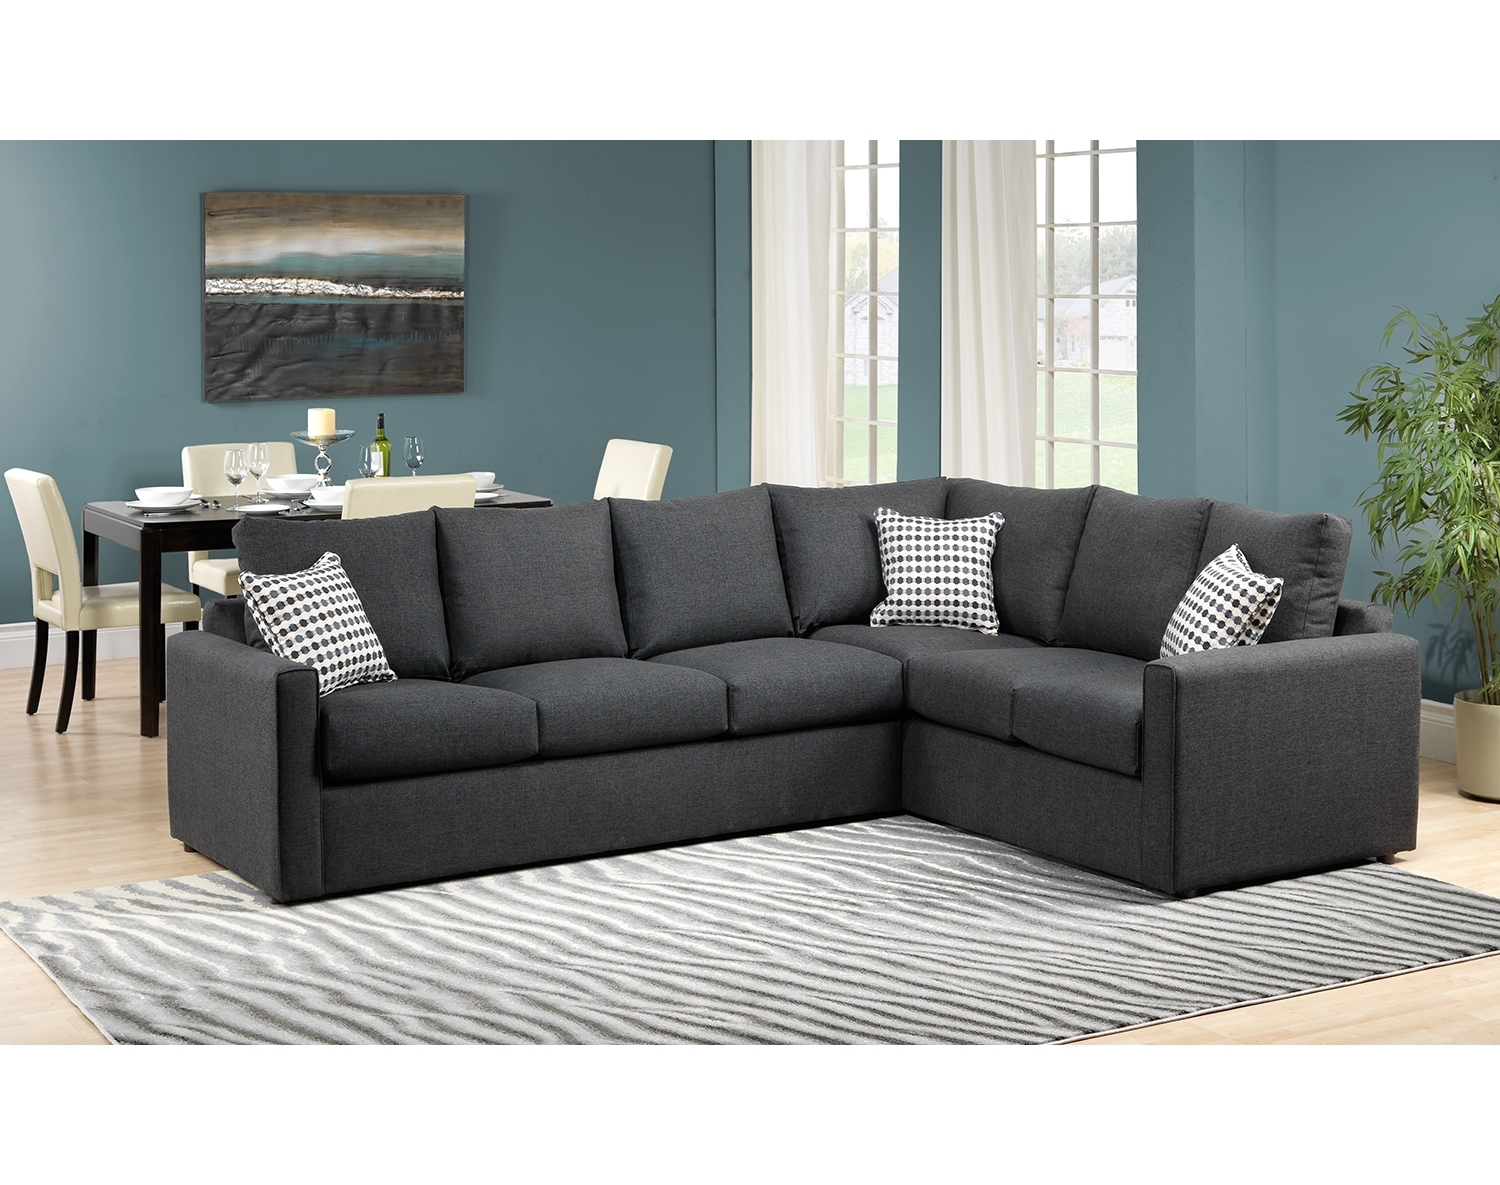 Sectional Sofa Bed Toronto – Image Of Ruostejarvi With Sectional Sofas In Toronto (View 10 of 10)